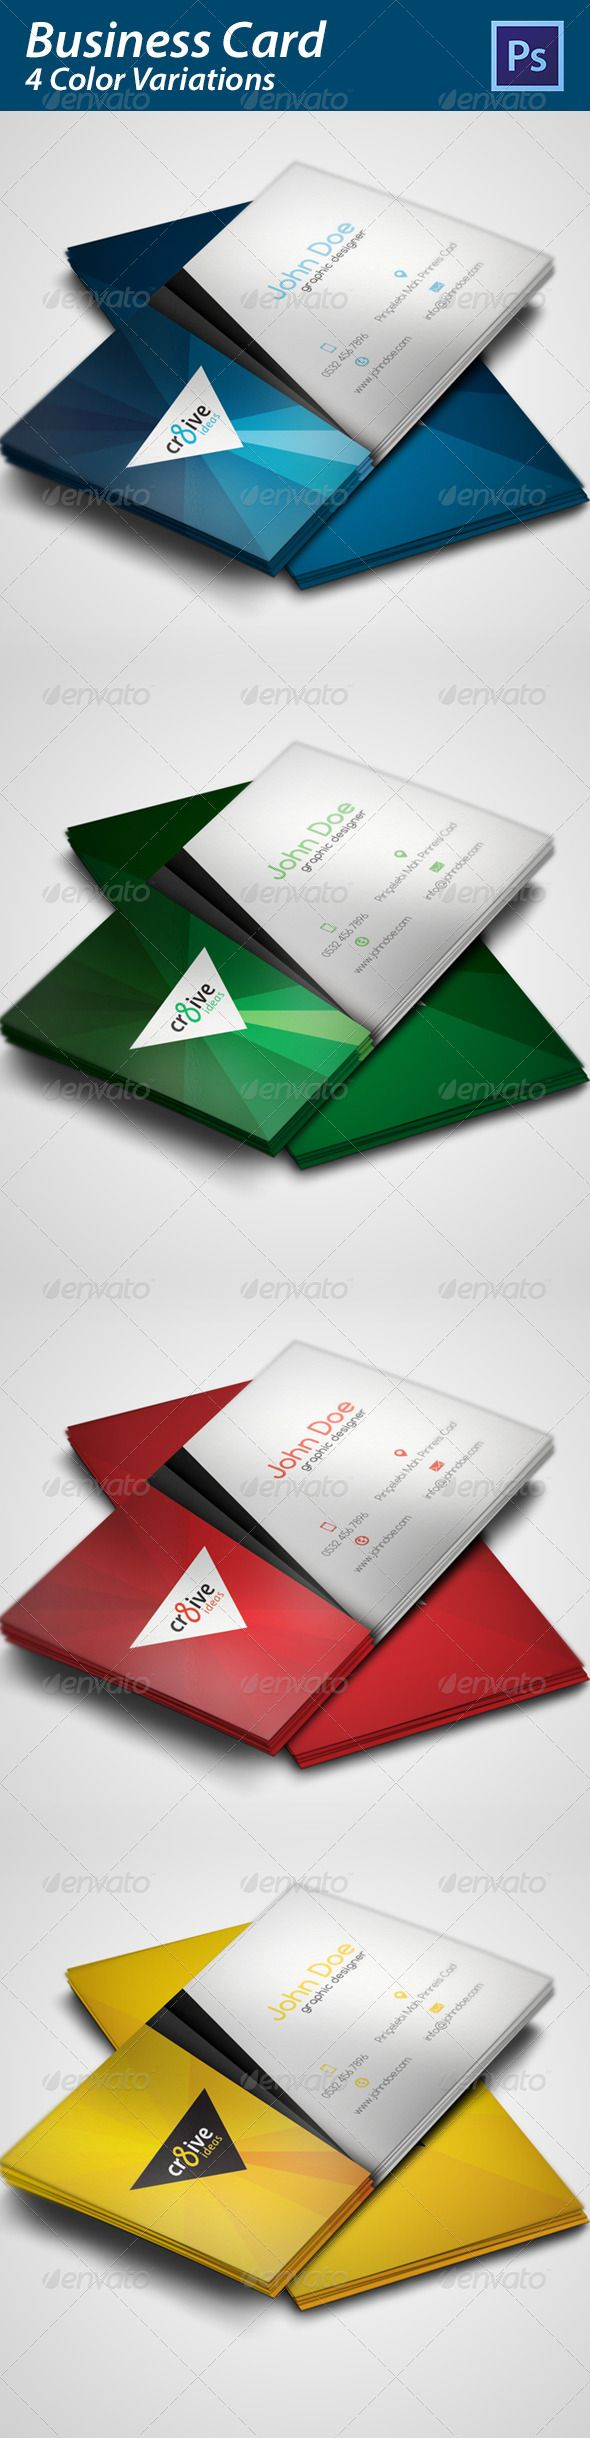 3023 best nice business cards on pinterest images on pinterest 3023 best nice business cards on pinterest images on pinterest card templates brand design and graphics magicingreecefo Image collections